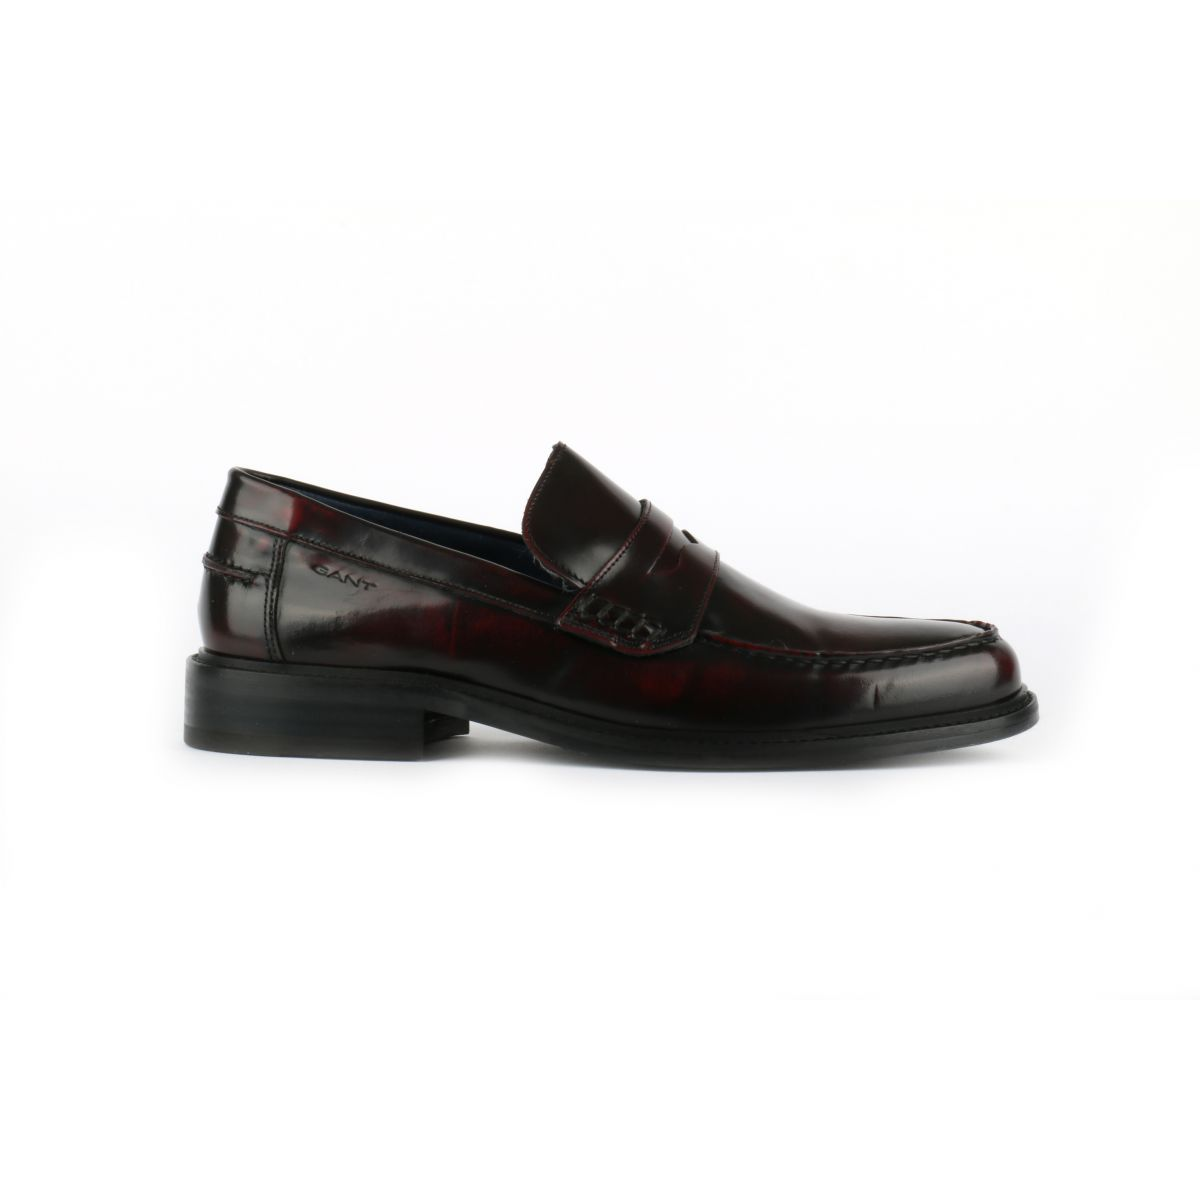 Rode/Bordeaux Gant Harry Mocassins